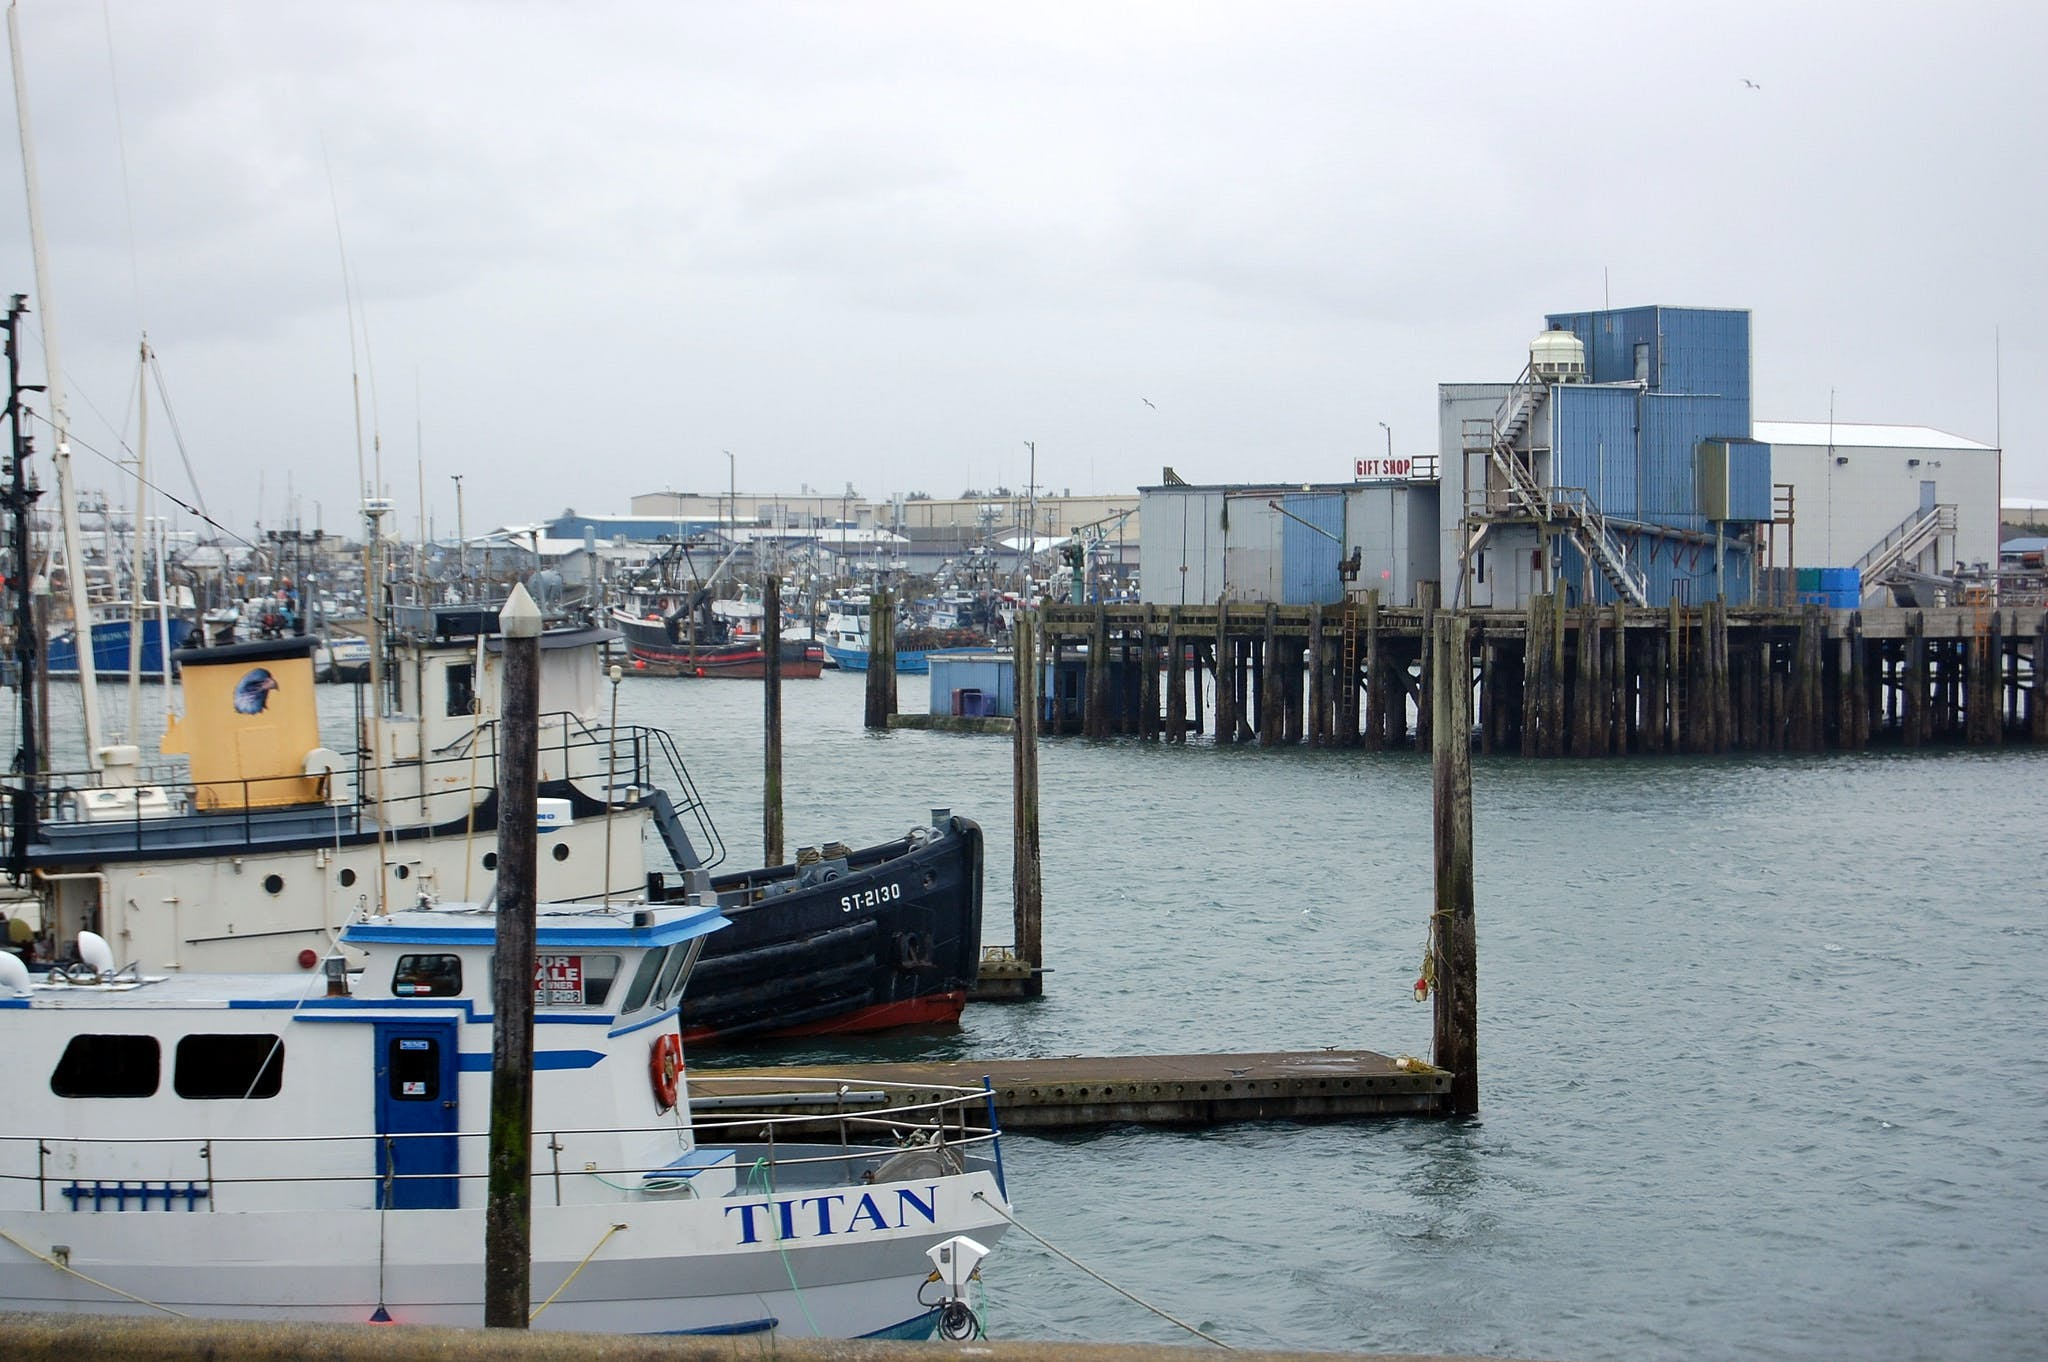 boats anchored at the docks on a cloudy day near westport, washington